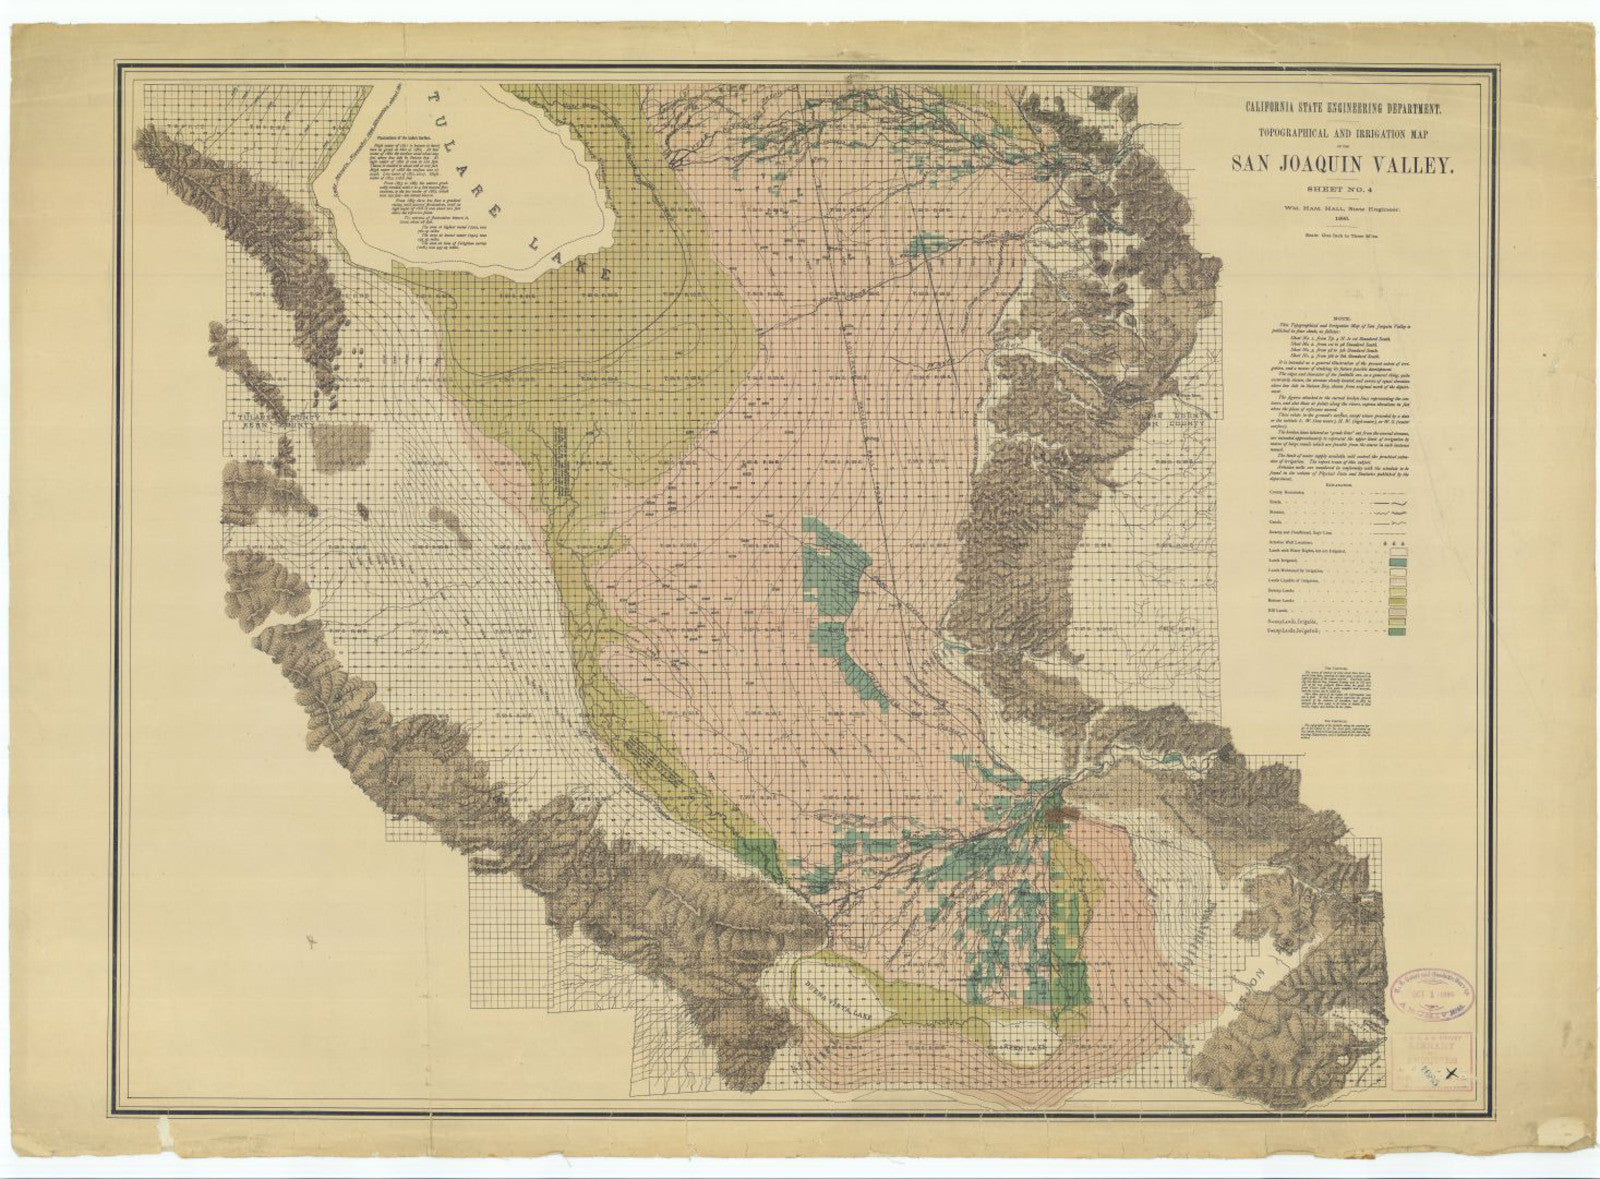 Print Of Topographical And Irrigation Map Of The San Joaquin Valley